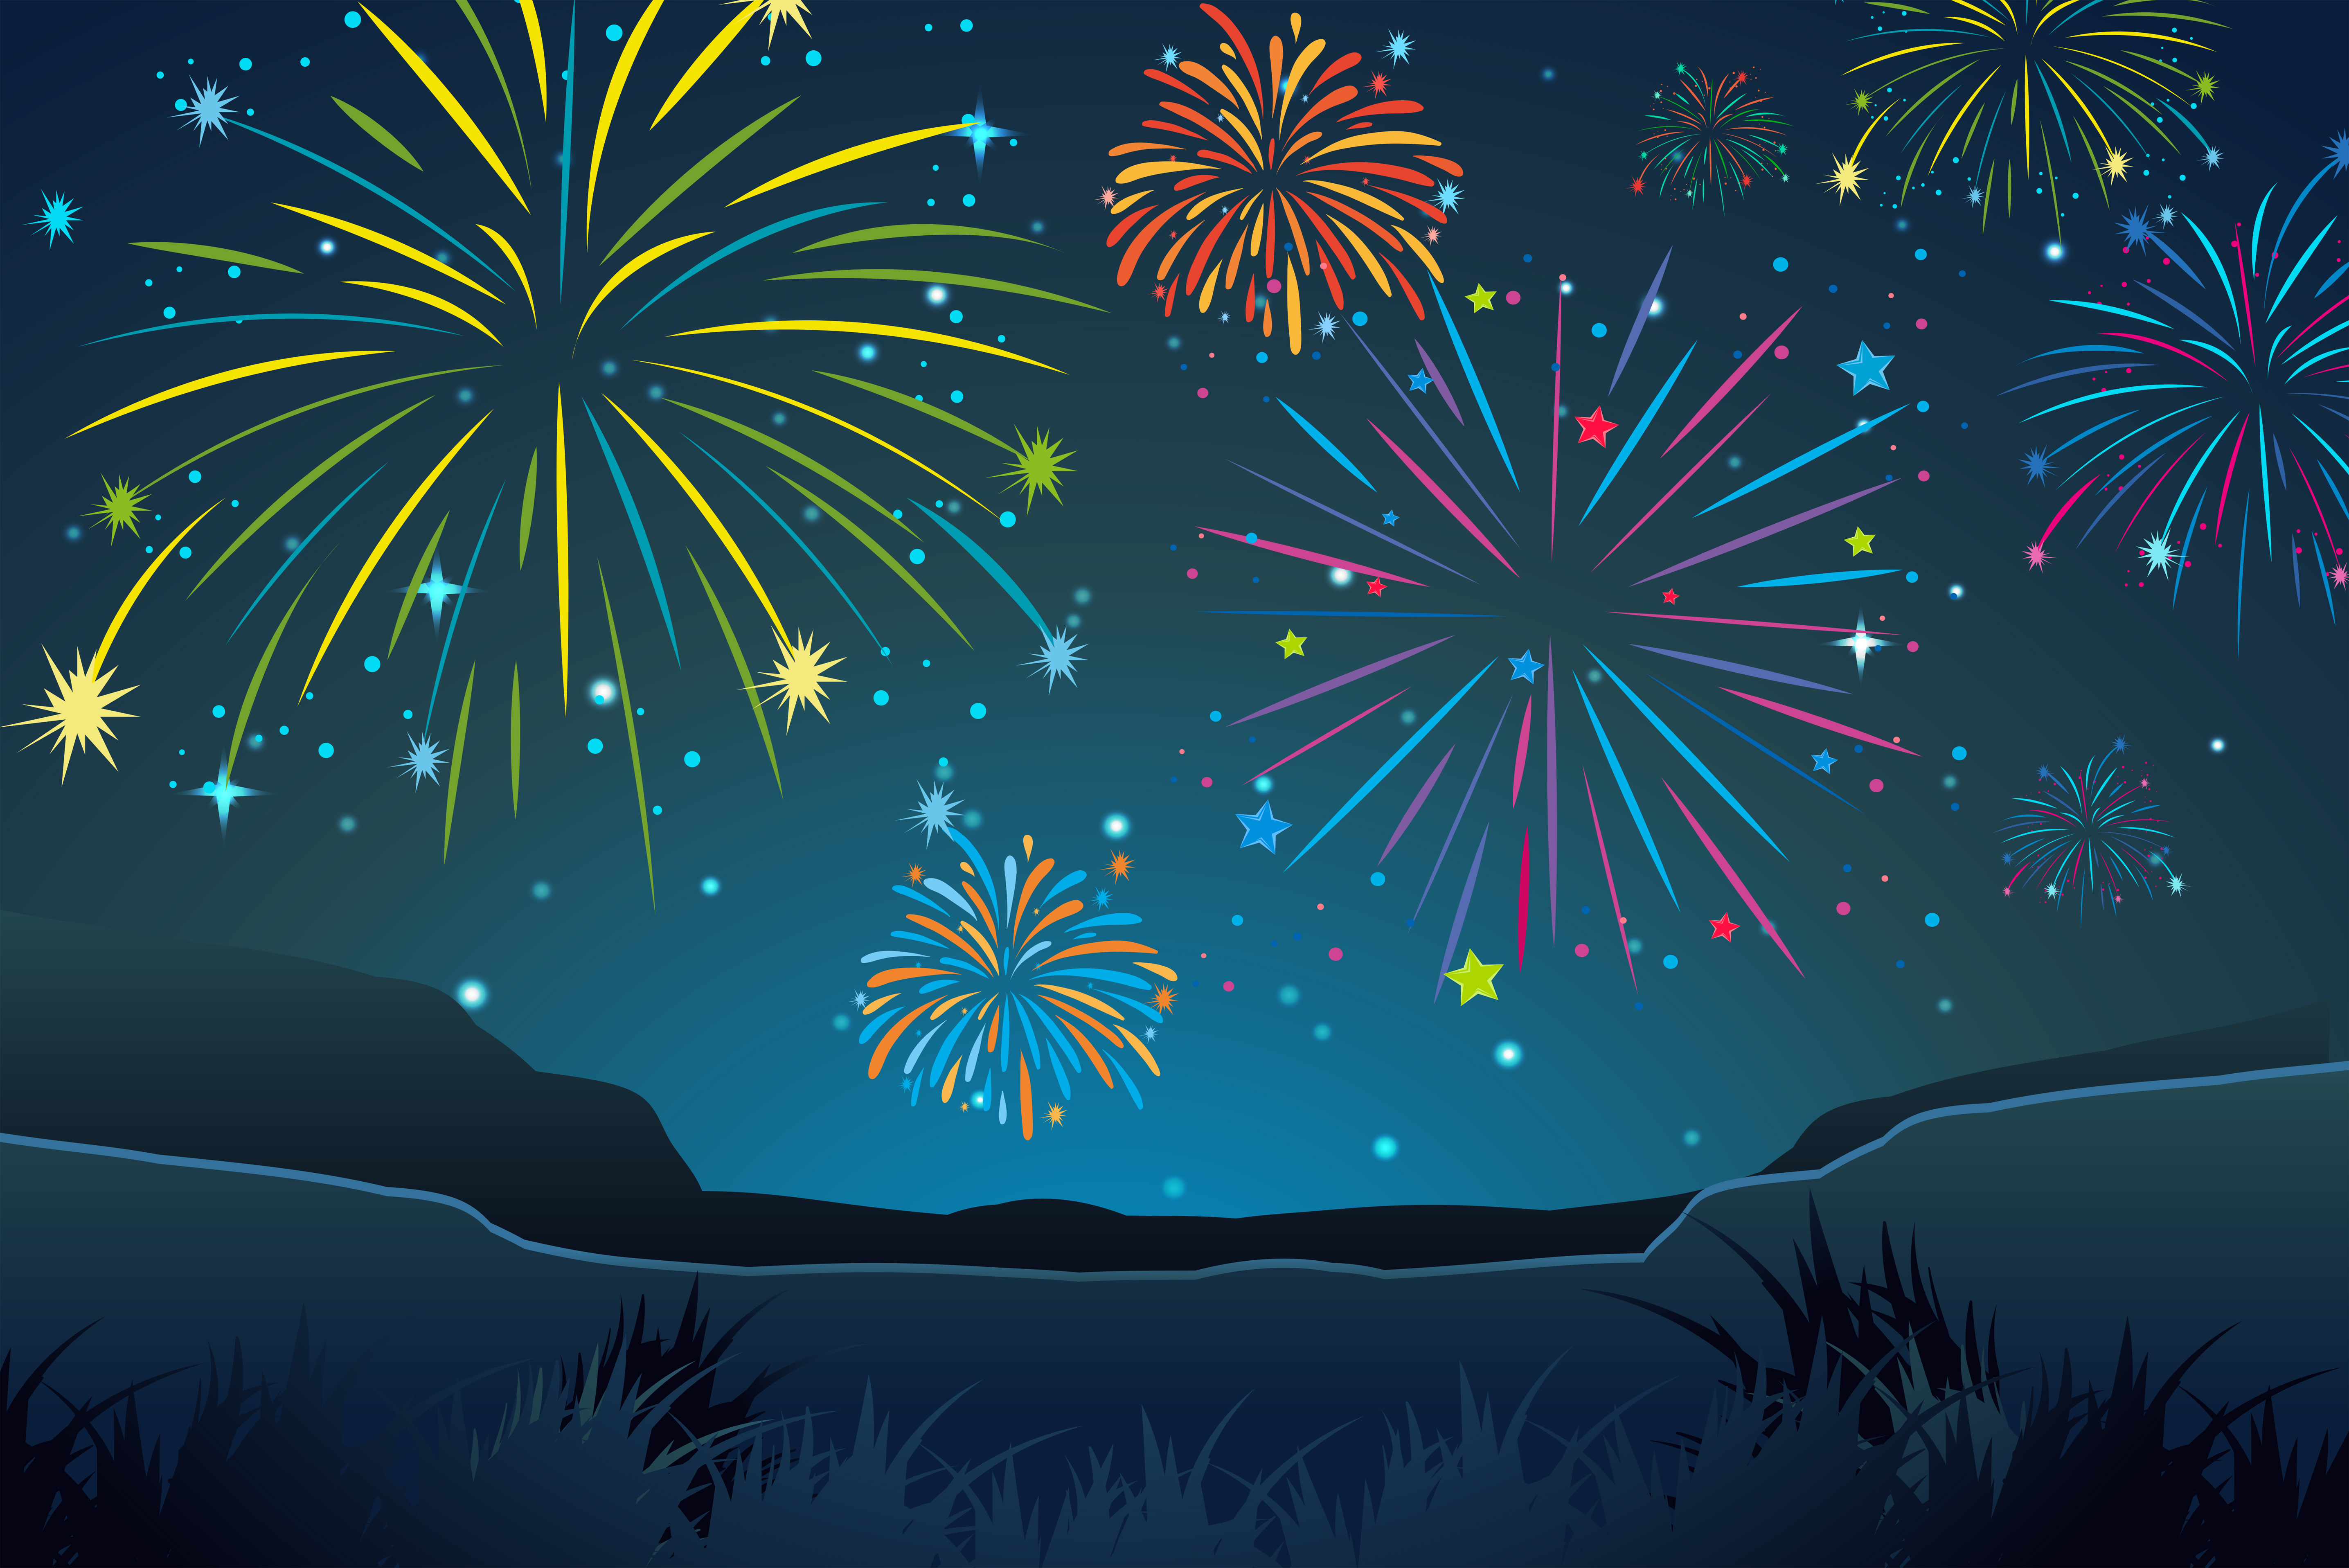 Night Scene With Fireworks In Sky Download Free Vectors